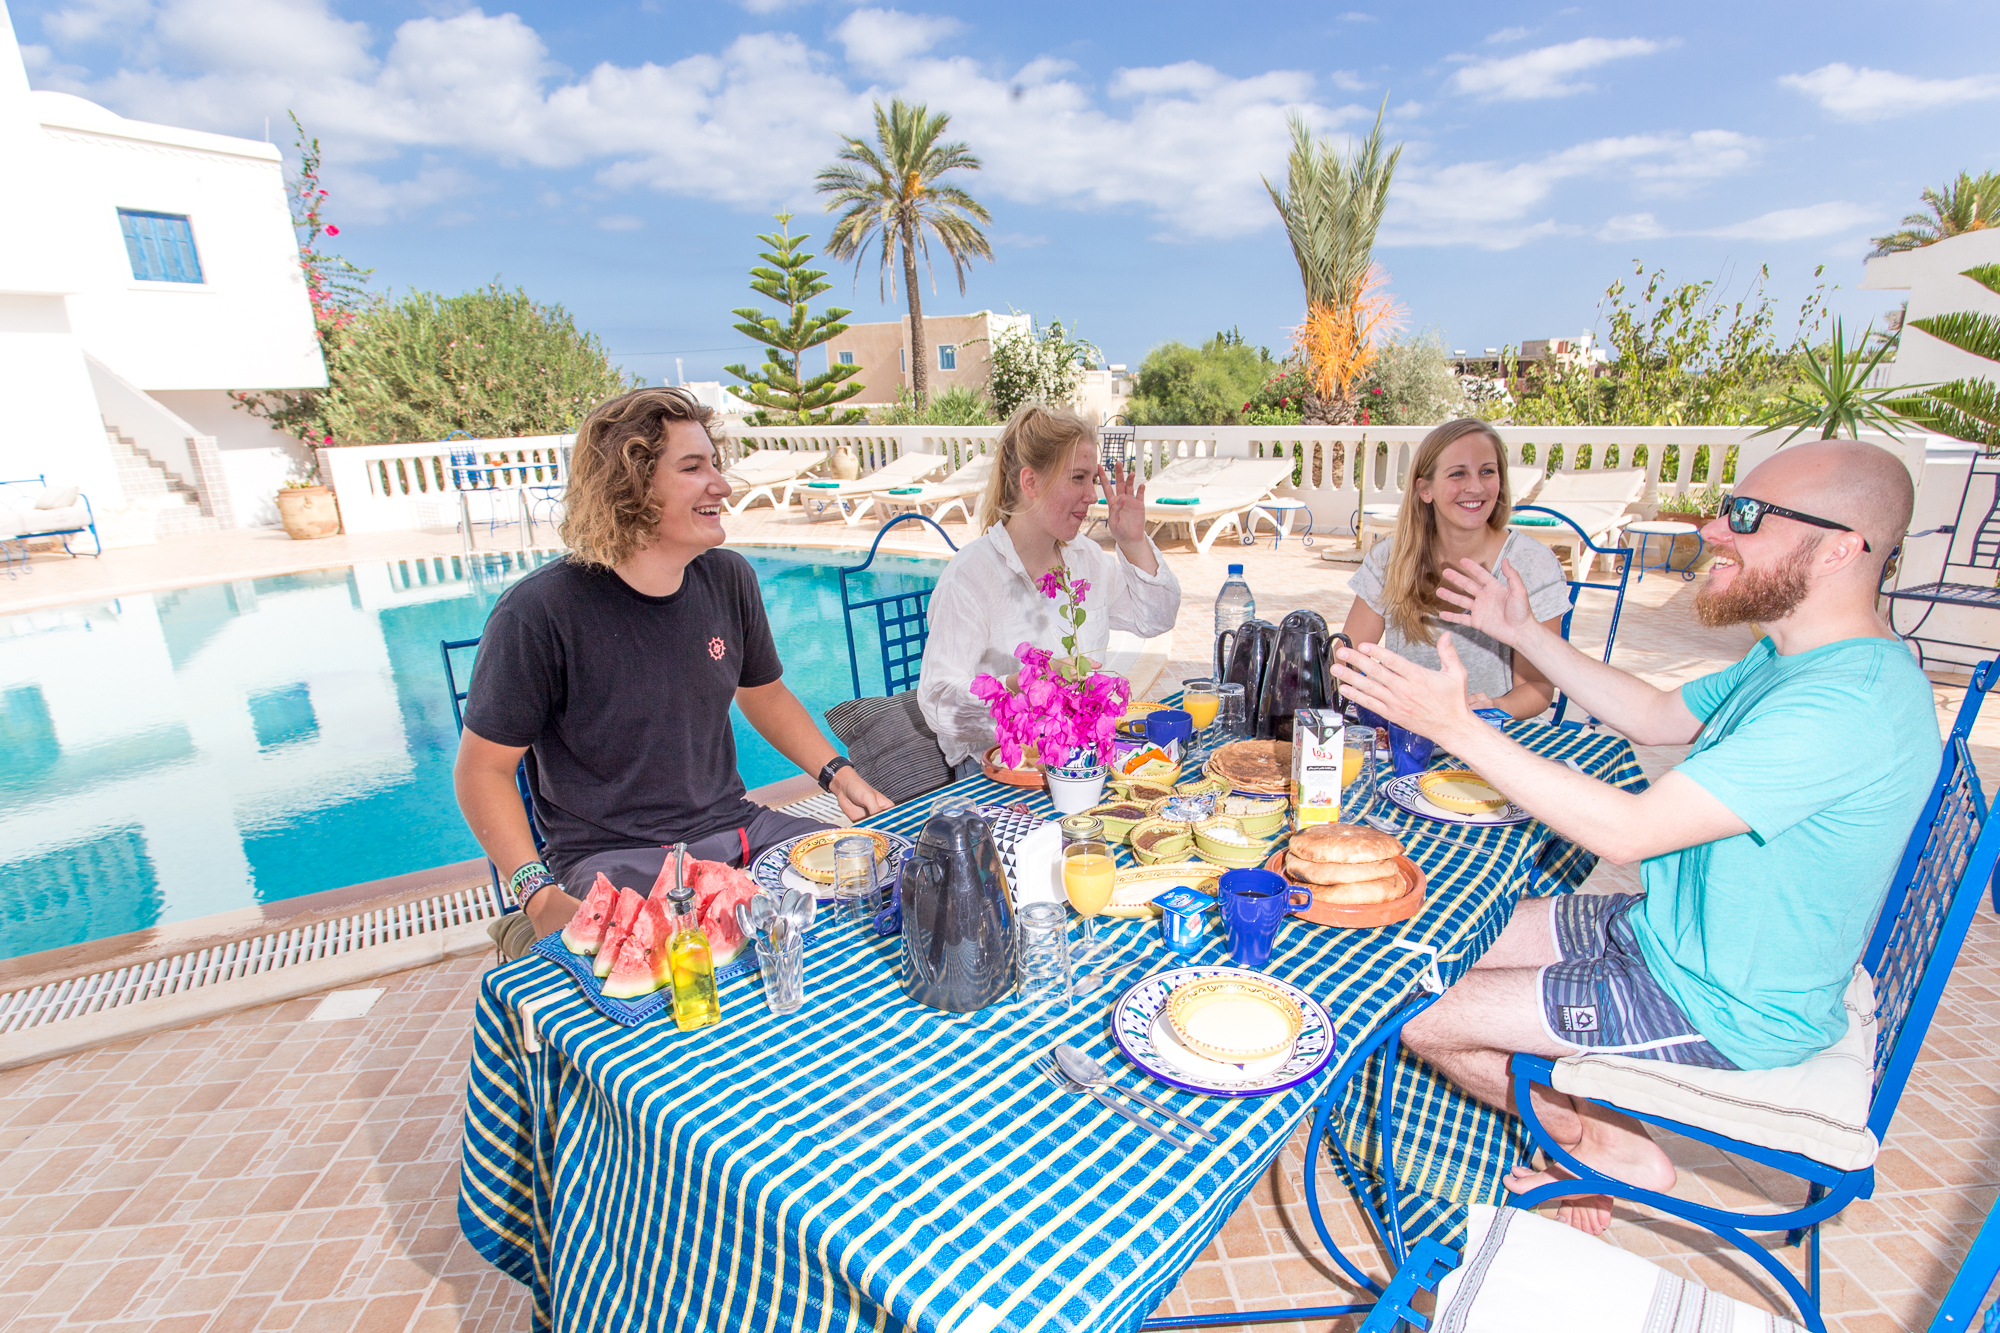 Thordis (2nd from the left) and the others at breakfast by the pool